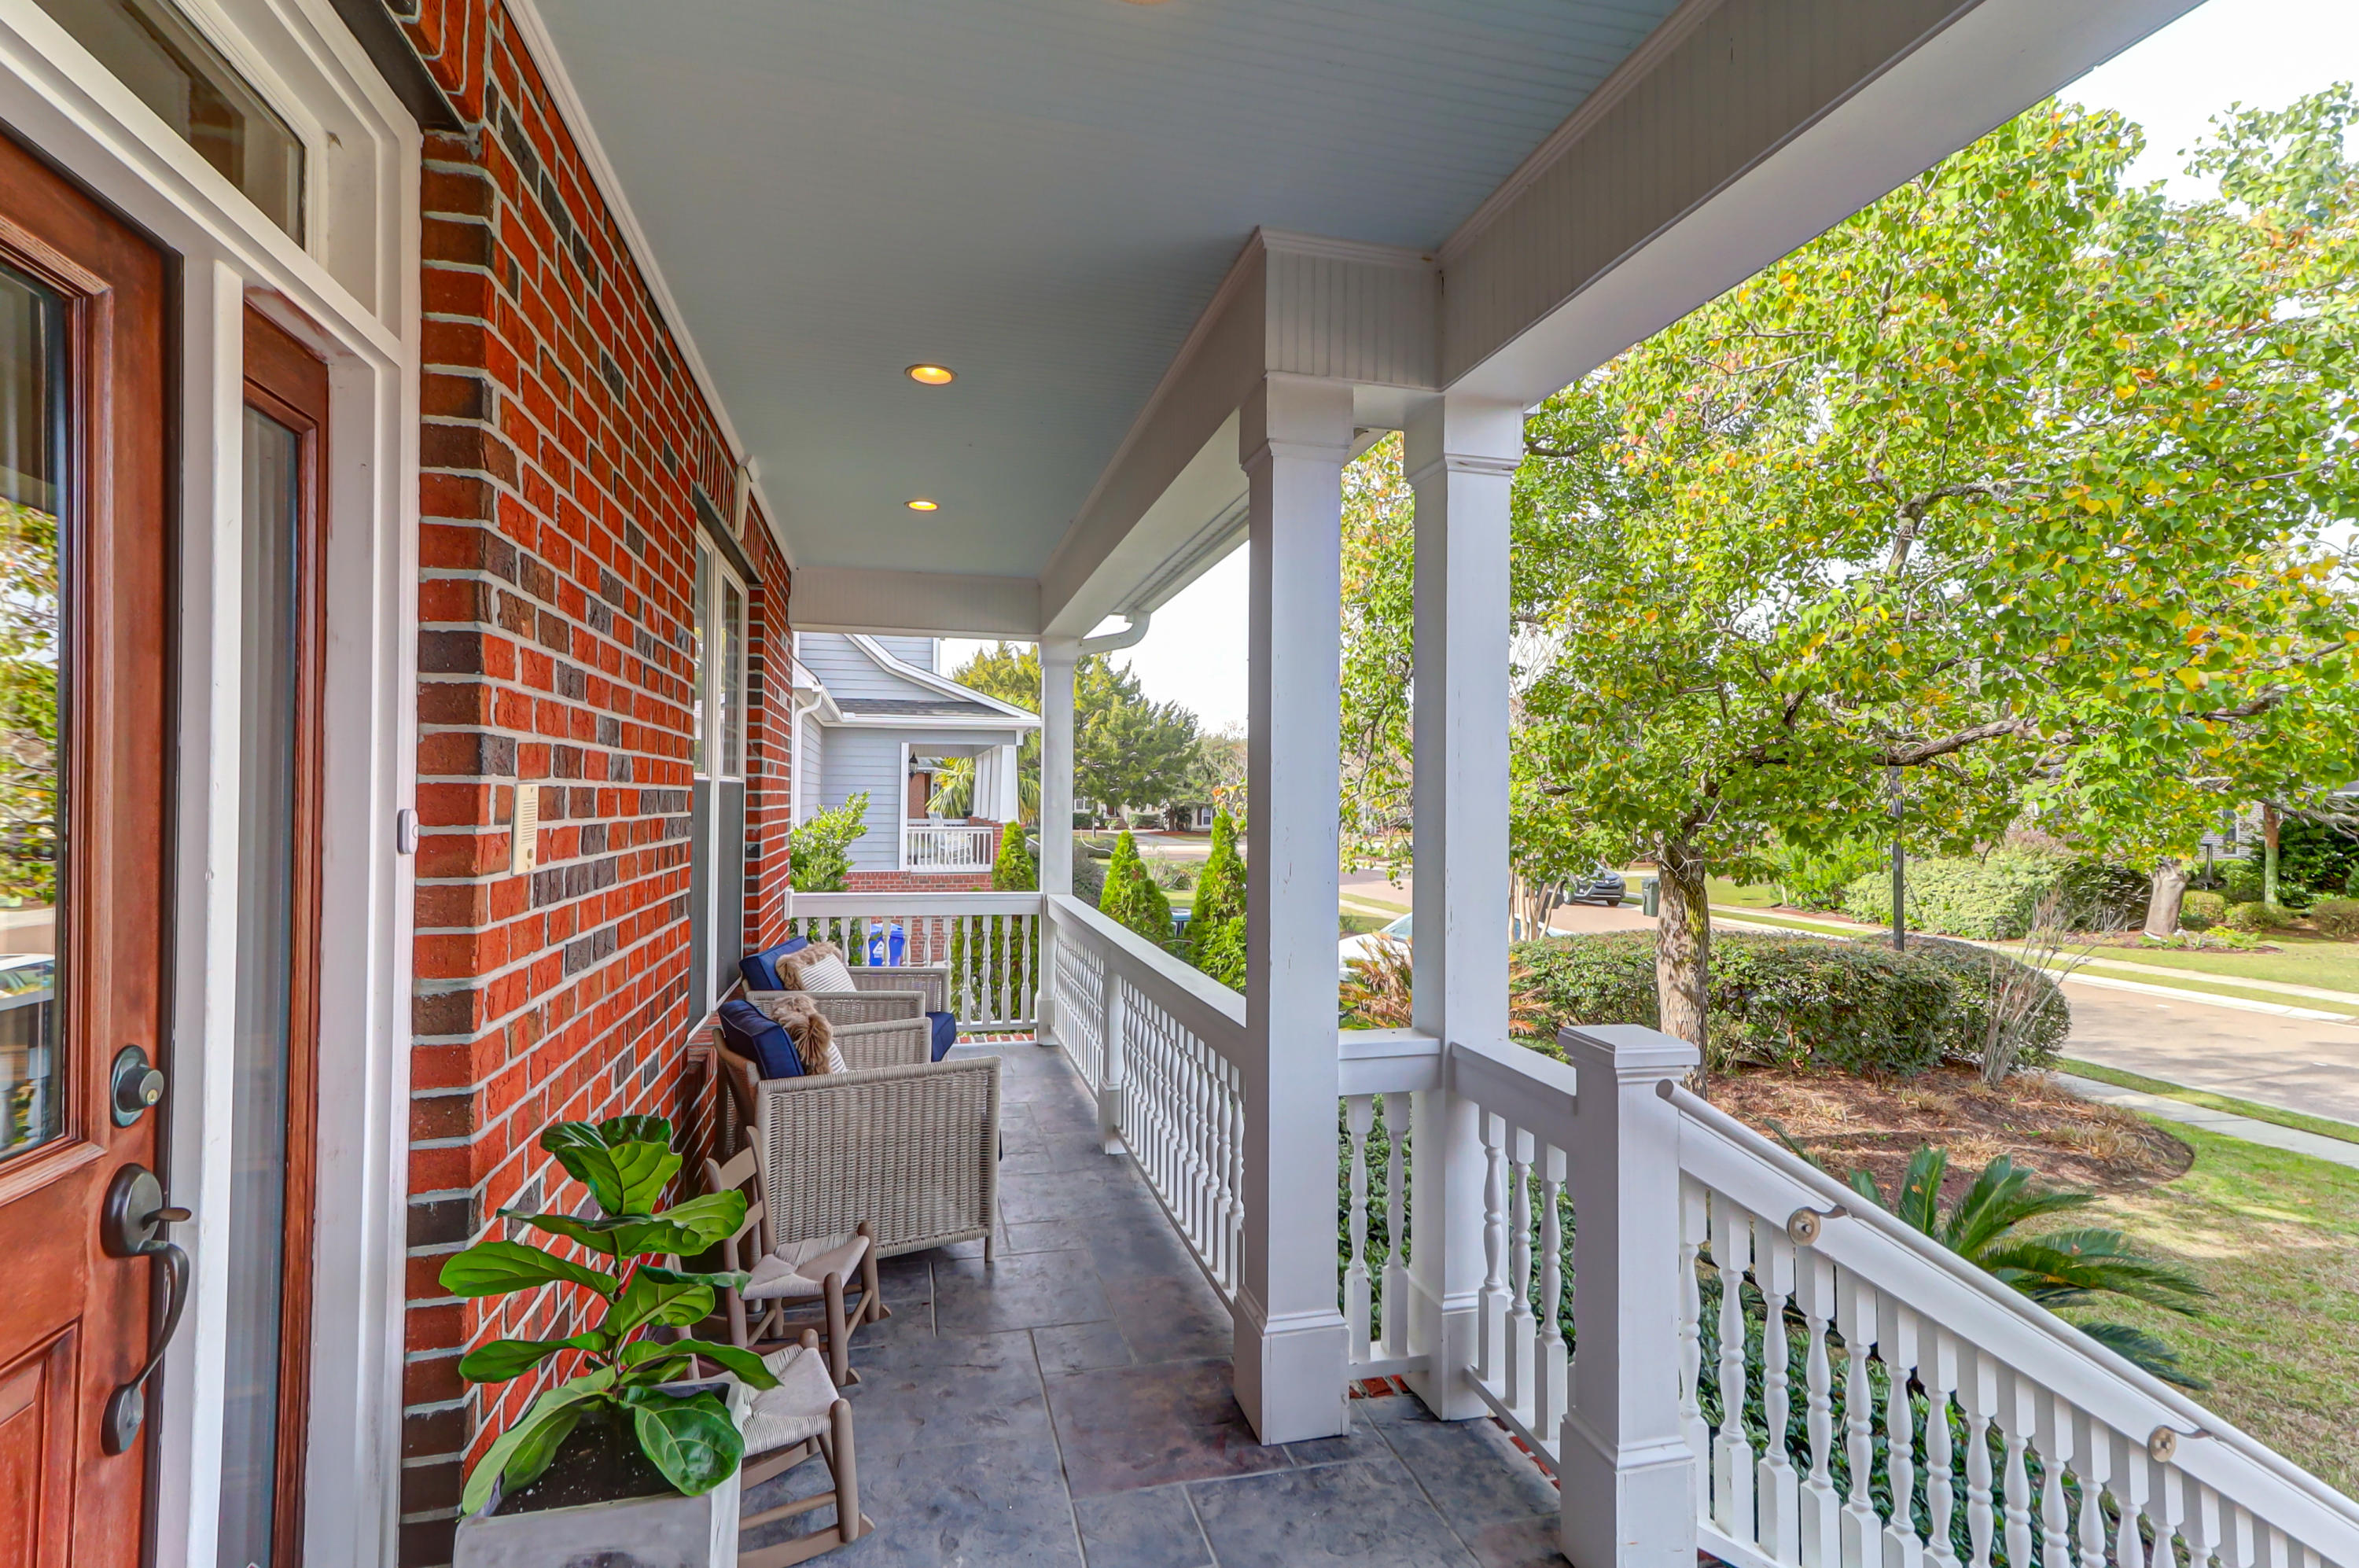 Woodward Pointe Homes For Sale - 657 White Chapel, Charleston, SC - 62